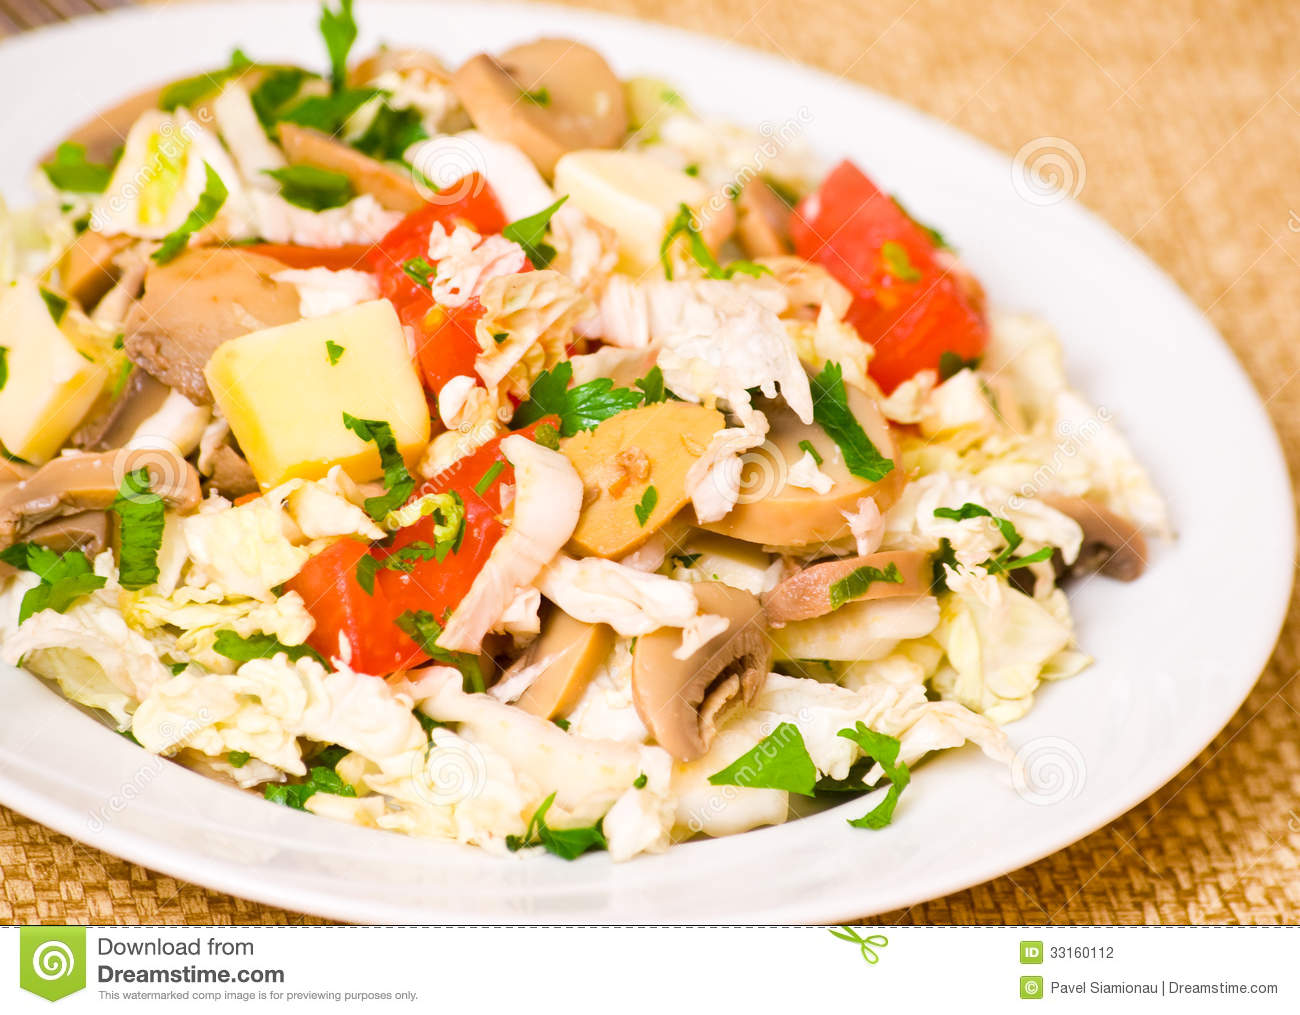 ... Photography: Salad with chicken, mushrooms, cheese and vegetables